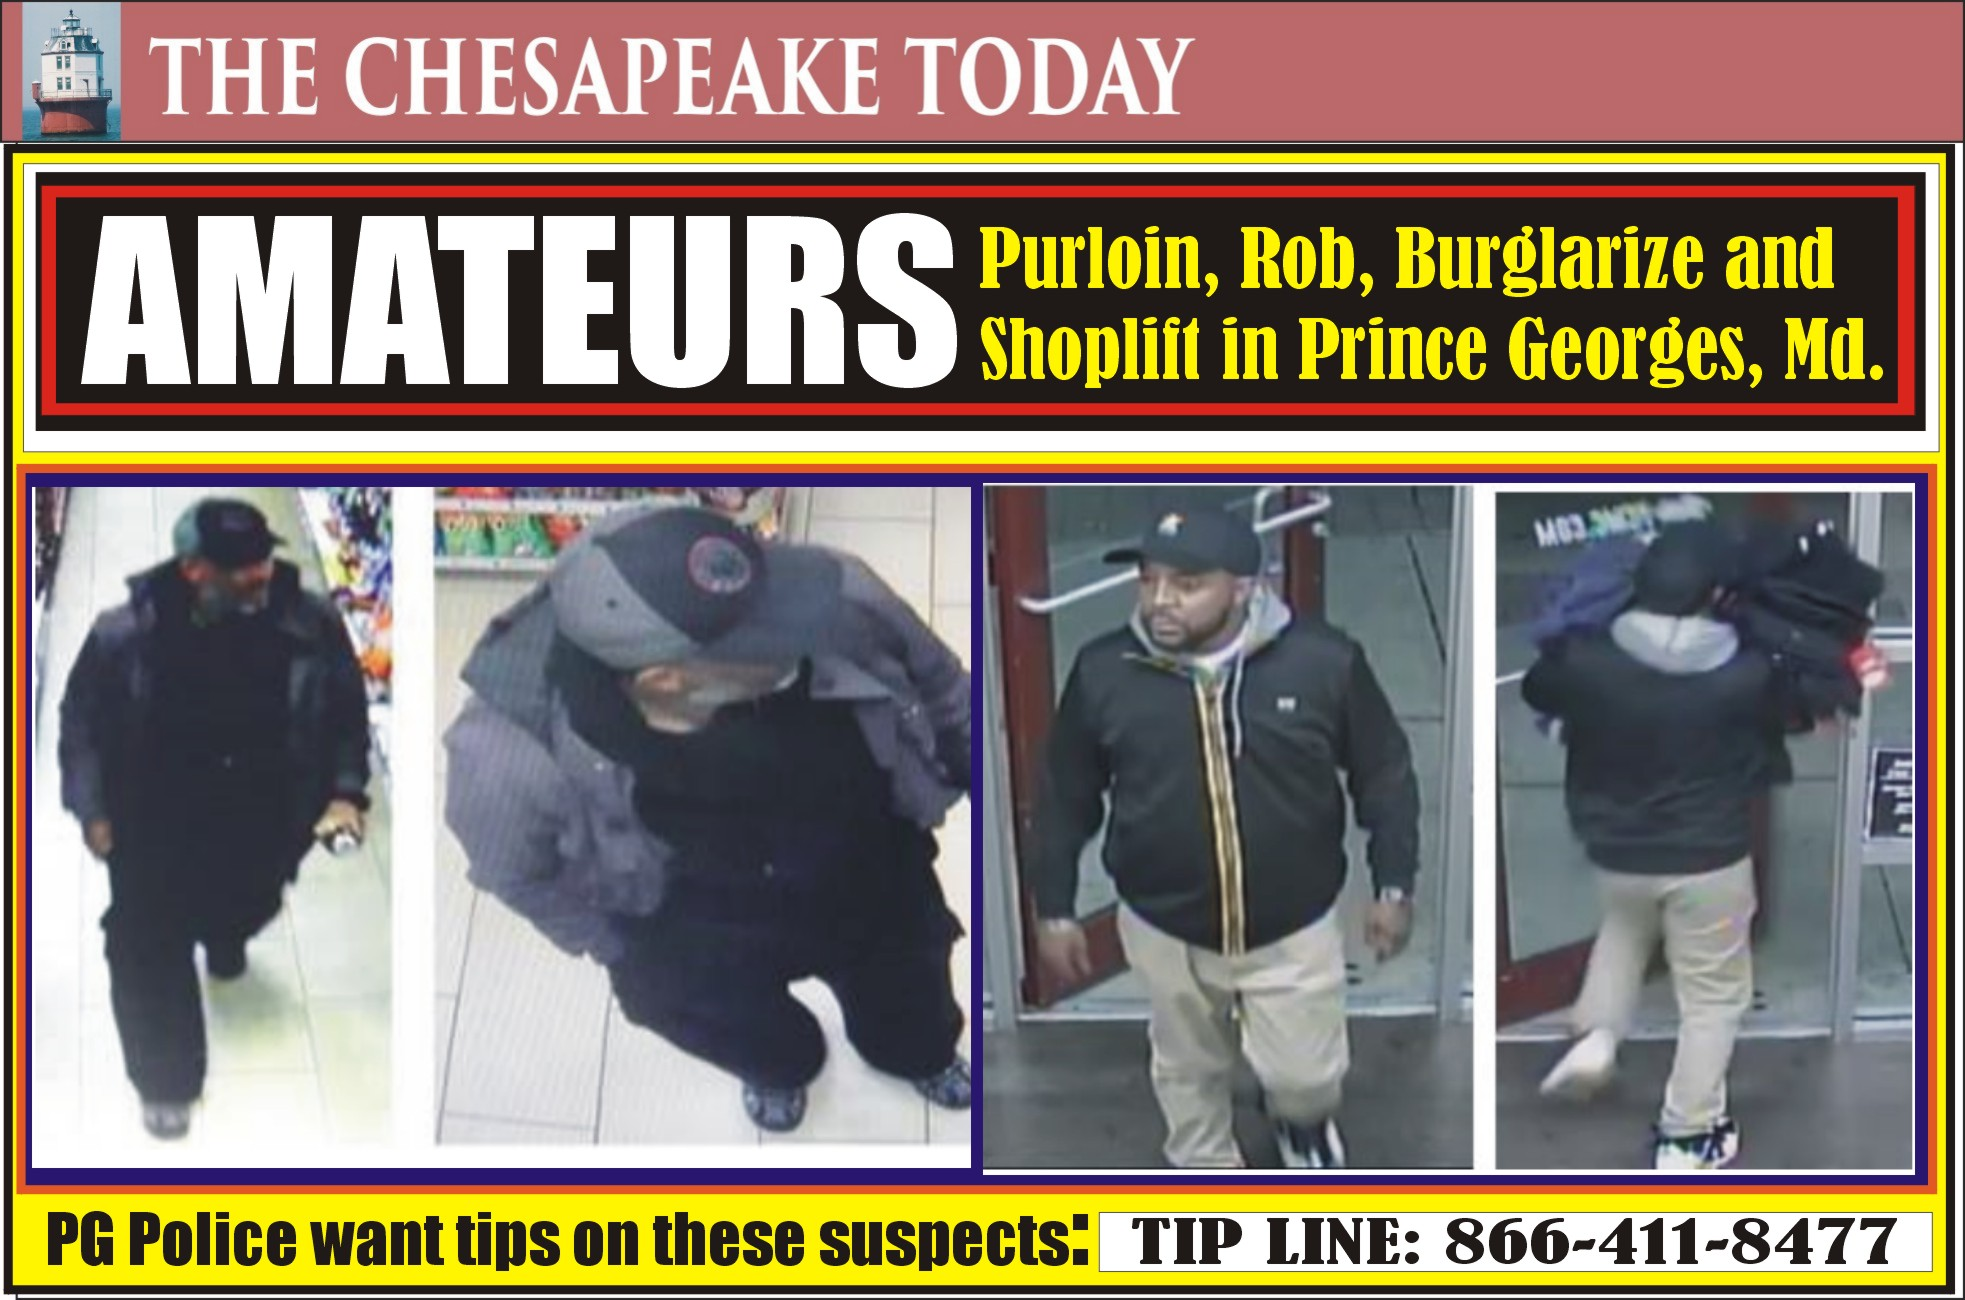 AMATEURS OF CRIME: The Wuhan Wahoos of PG County are wanted by Prince George's County Police – tips can win cash!